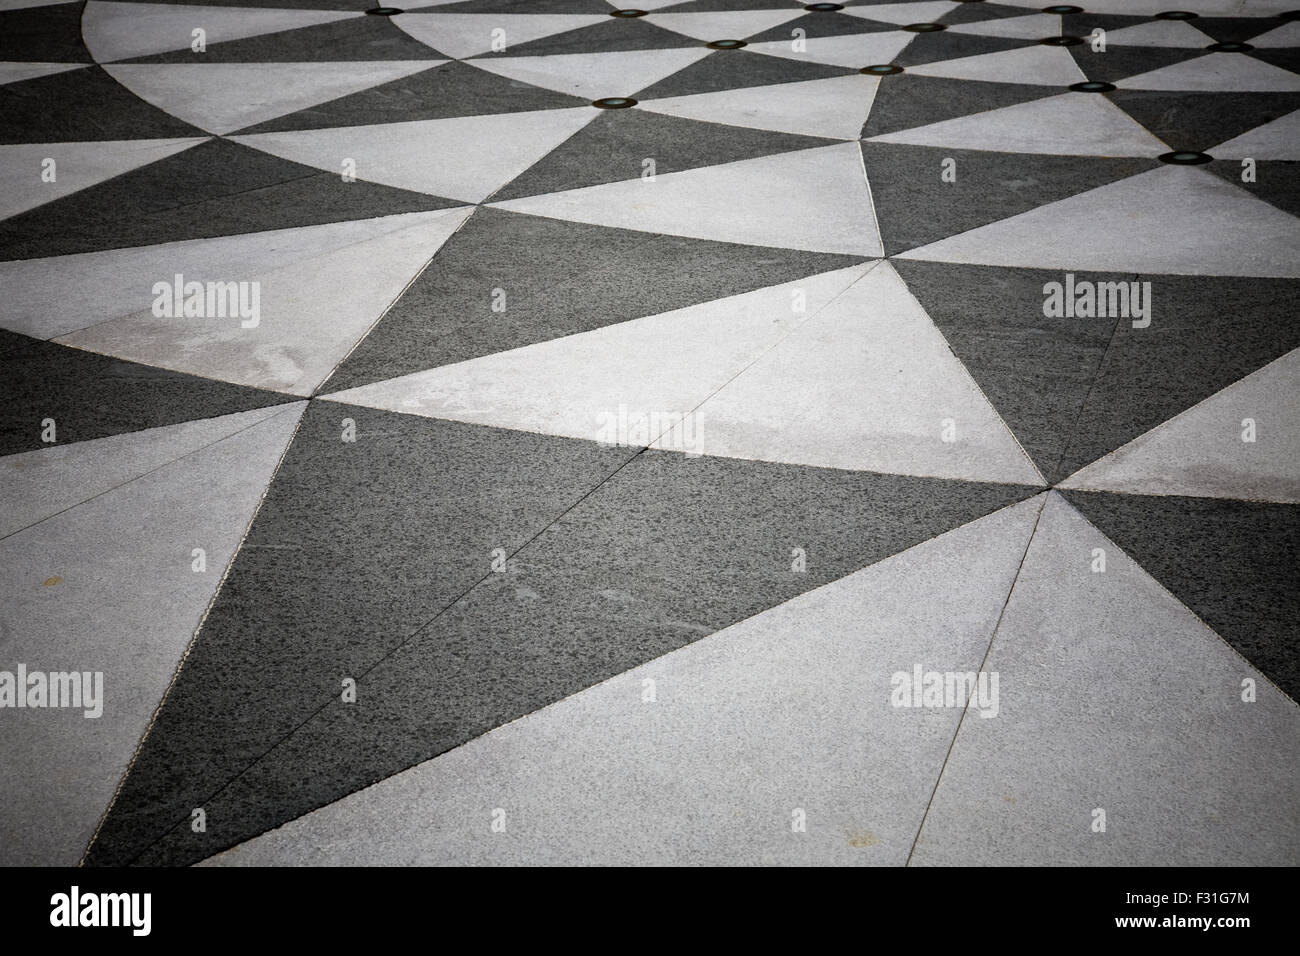 Black And White Triangle Floor Tile Stock Photos & Black And White ...